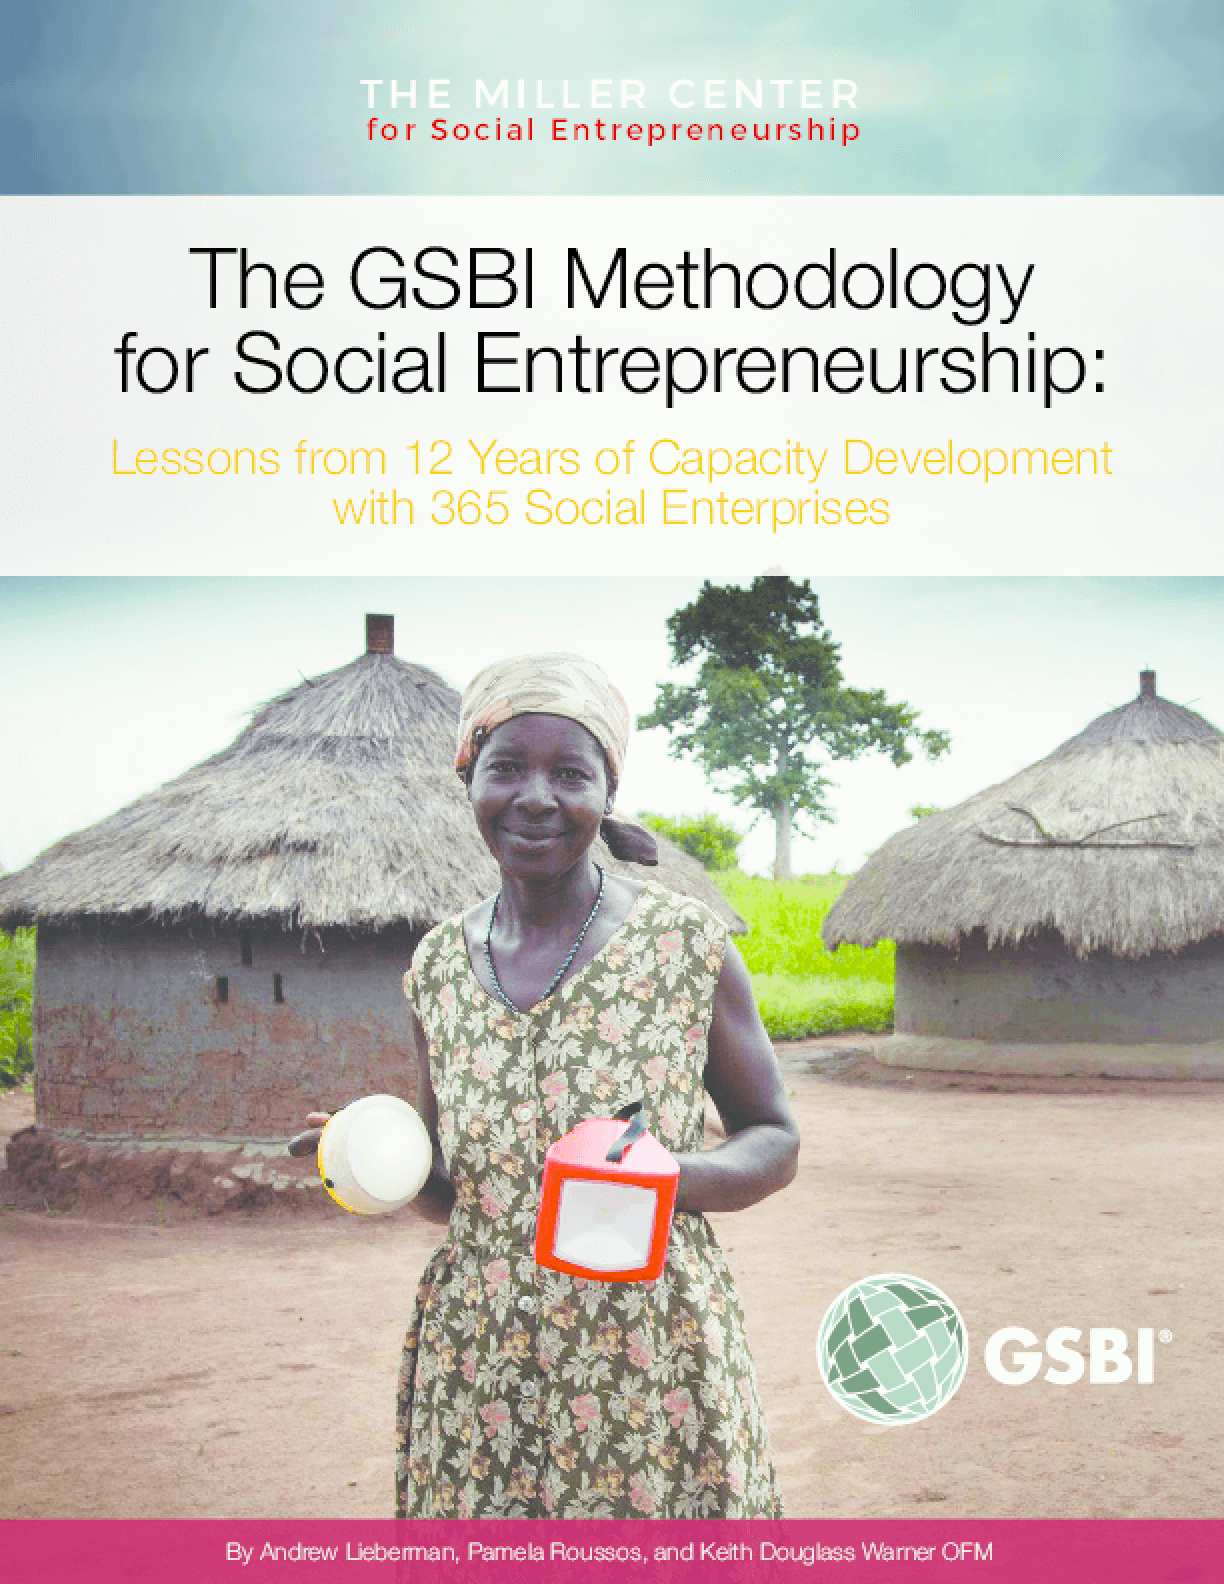 The GSBI Methodology for Social Entrepreneurship: Lessons from 12 Years of Capacity Development with 365 Social Enterprises